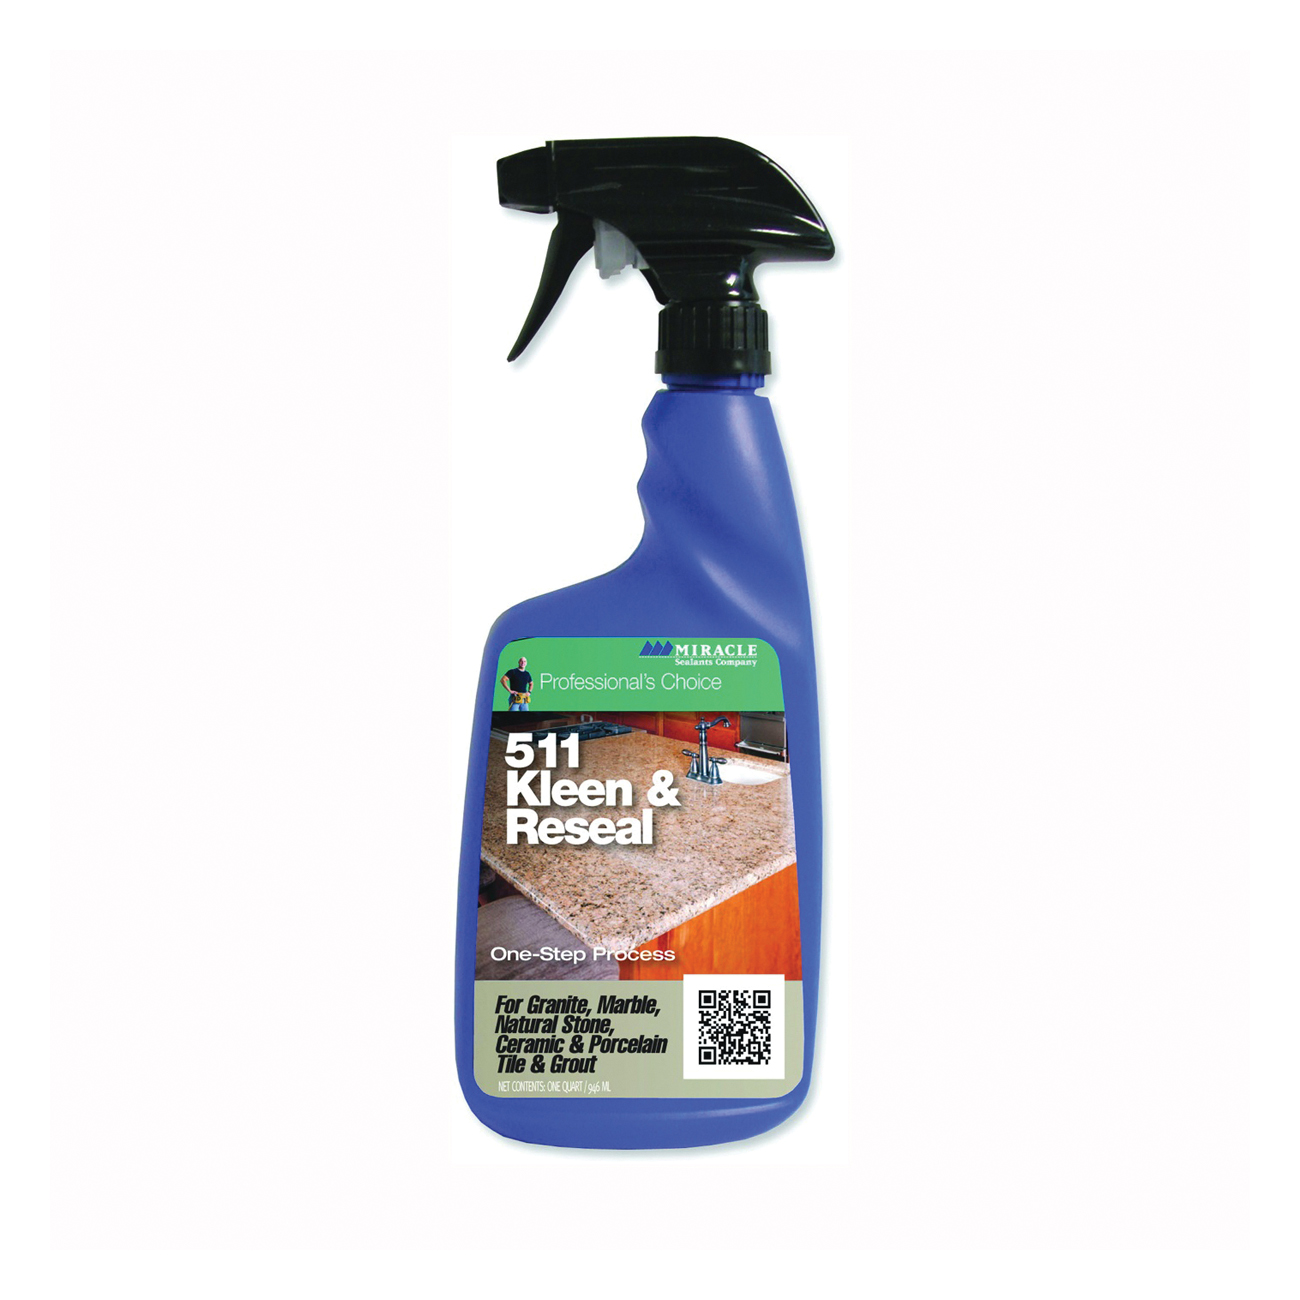 Picture of MIRACLE SEALANTS KL-RE-32OZ-6/1 Kleen and Reseal, 32 oz Package, Floral, Purple